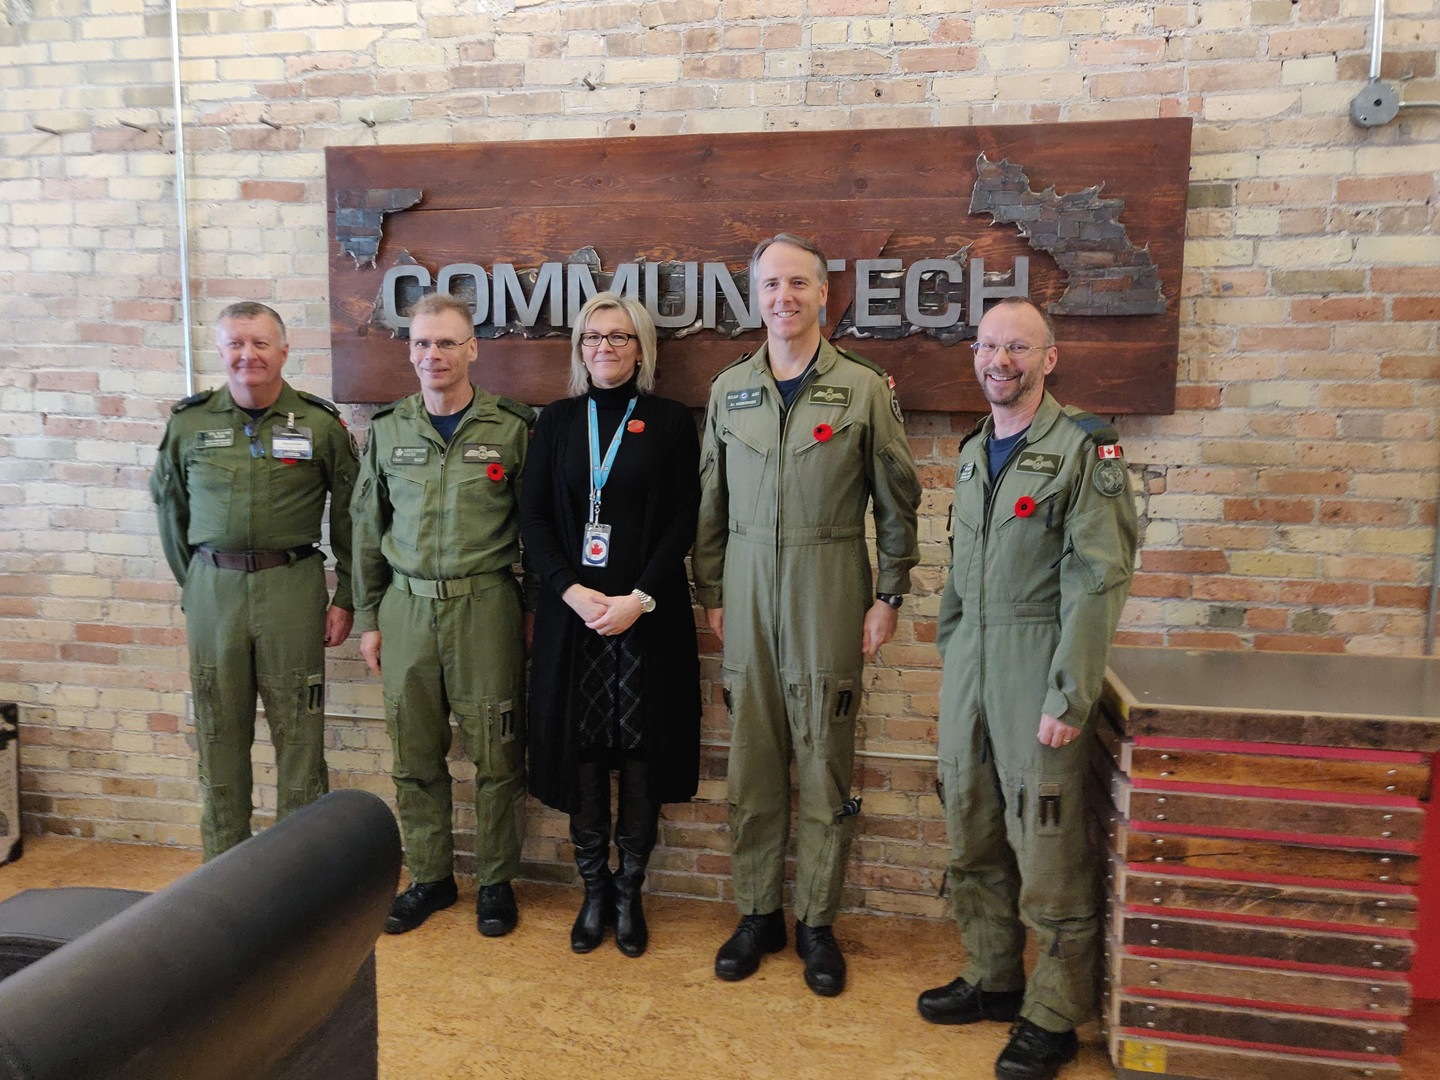 Communitech + Canadian Armed Forces